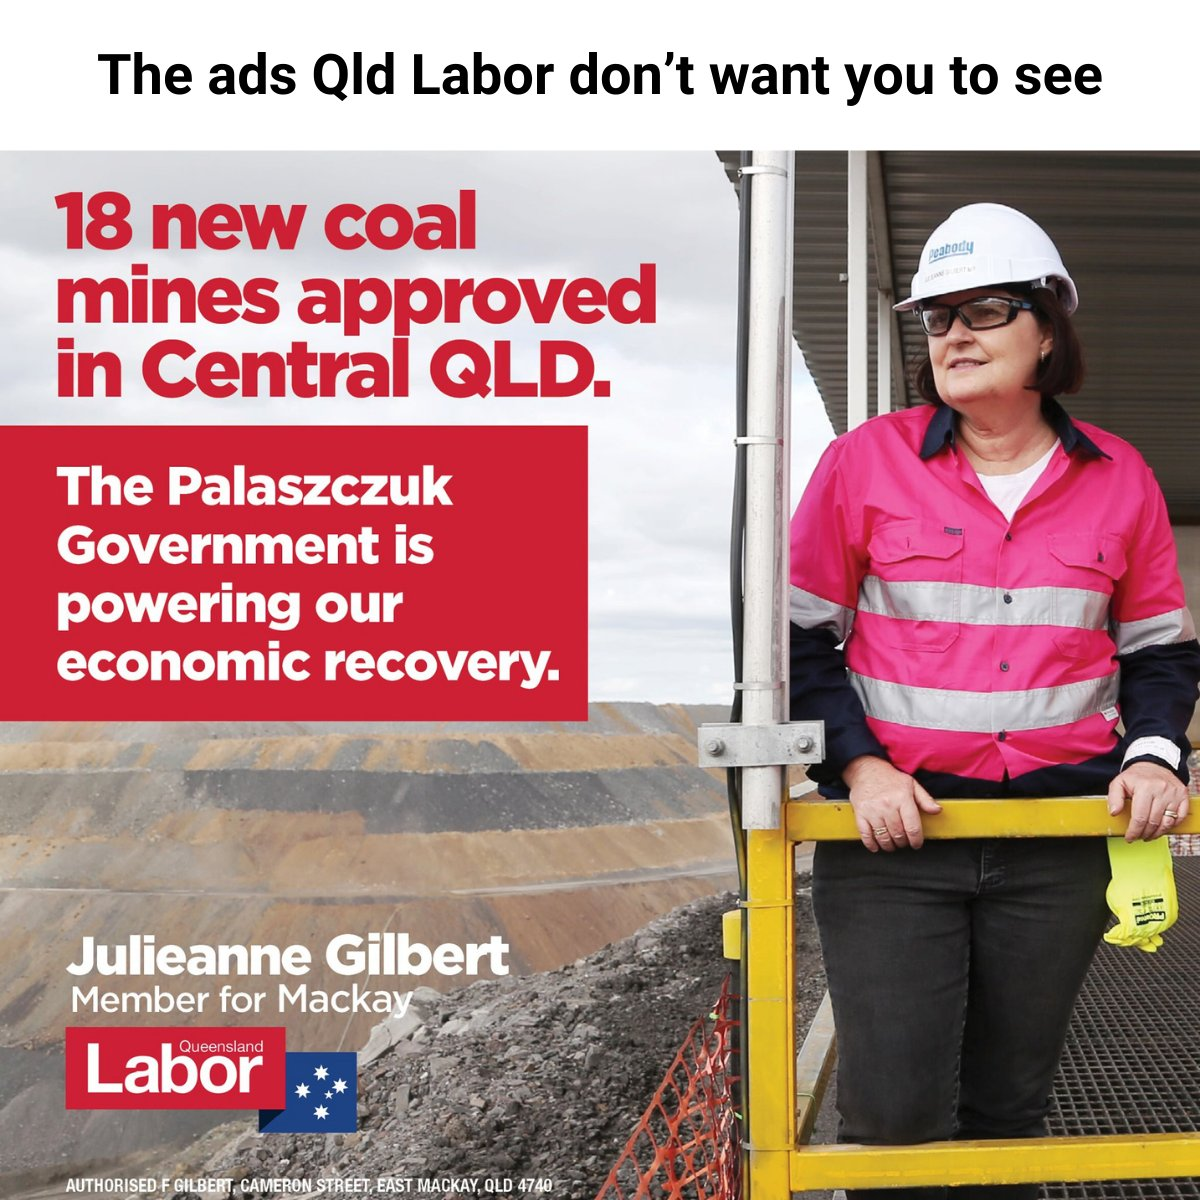 """You won't see this ad in Brisbane. You might see an ad about Labor's commitment to renewables, or how they """"accept the science"""" of climate change. Here's why I think Labor's wrong to keep walking both sides of the fence here. Thread:"""